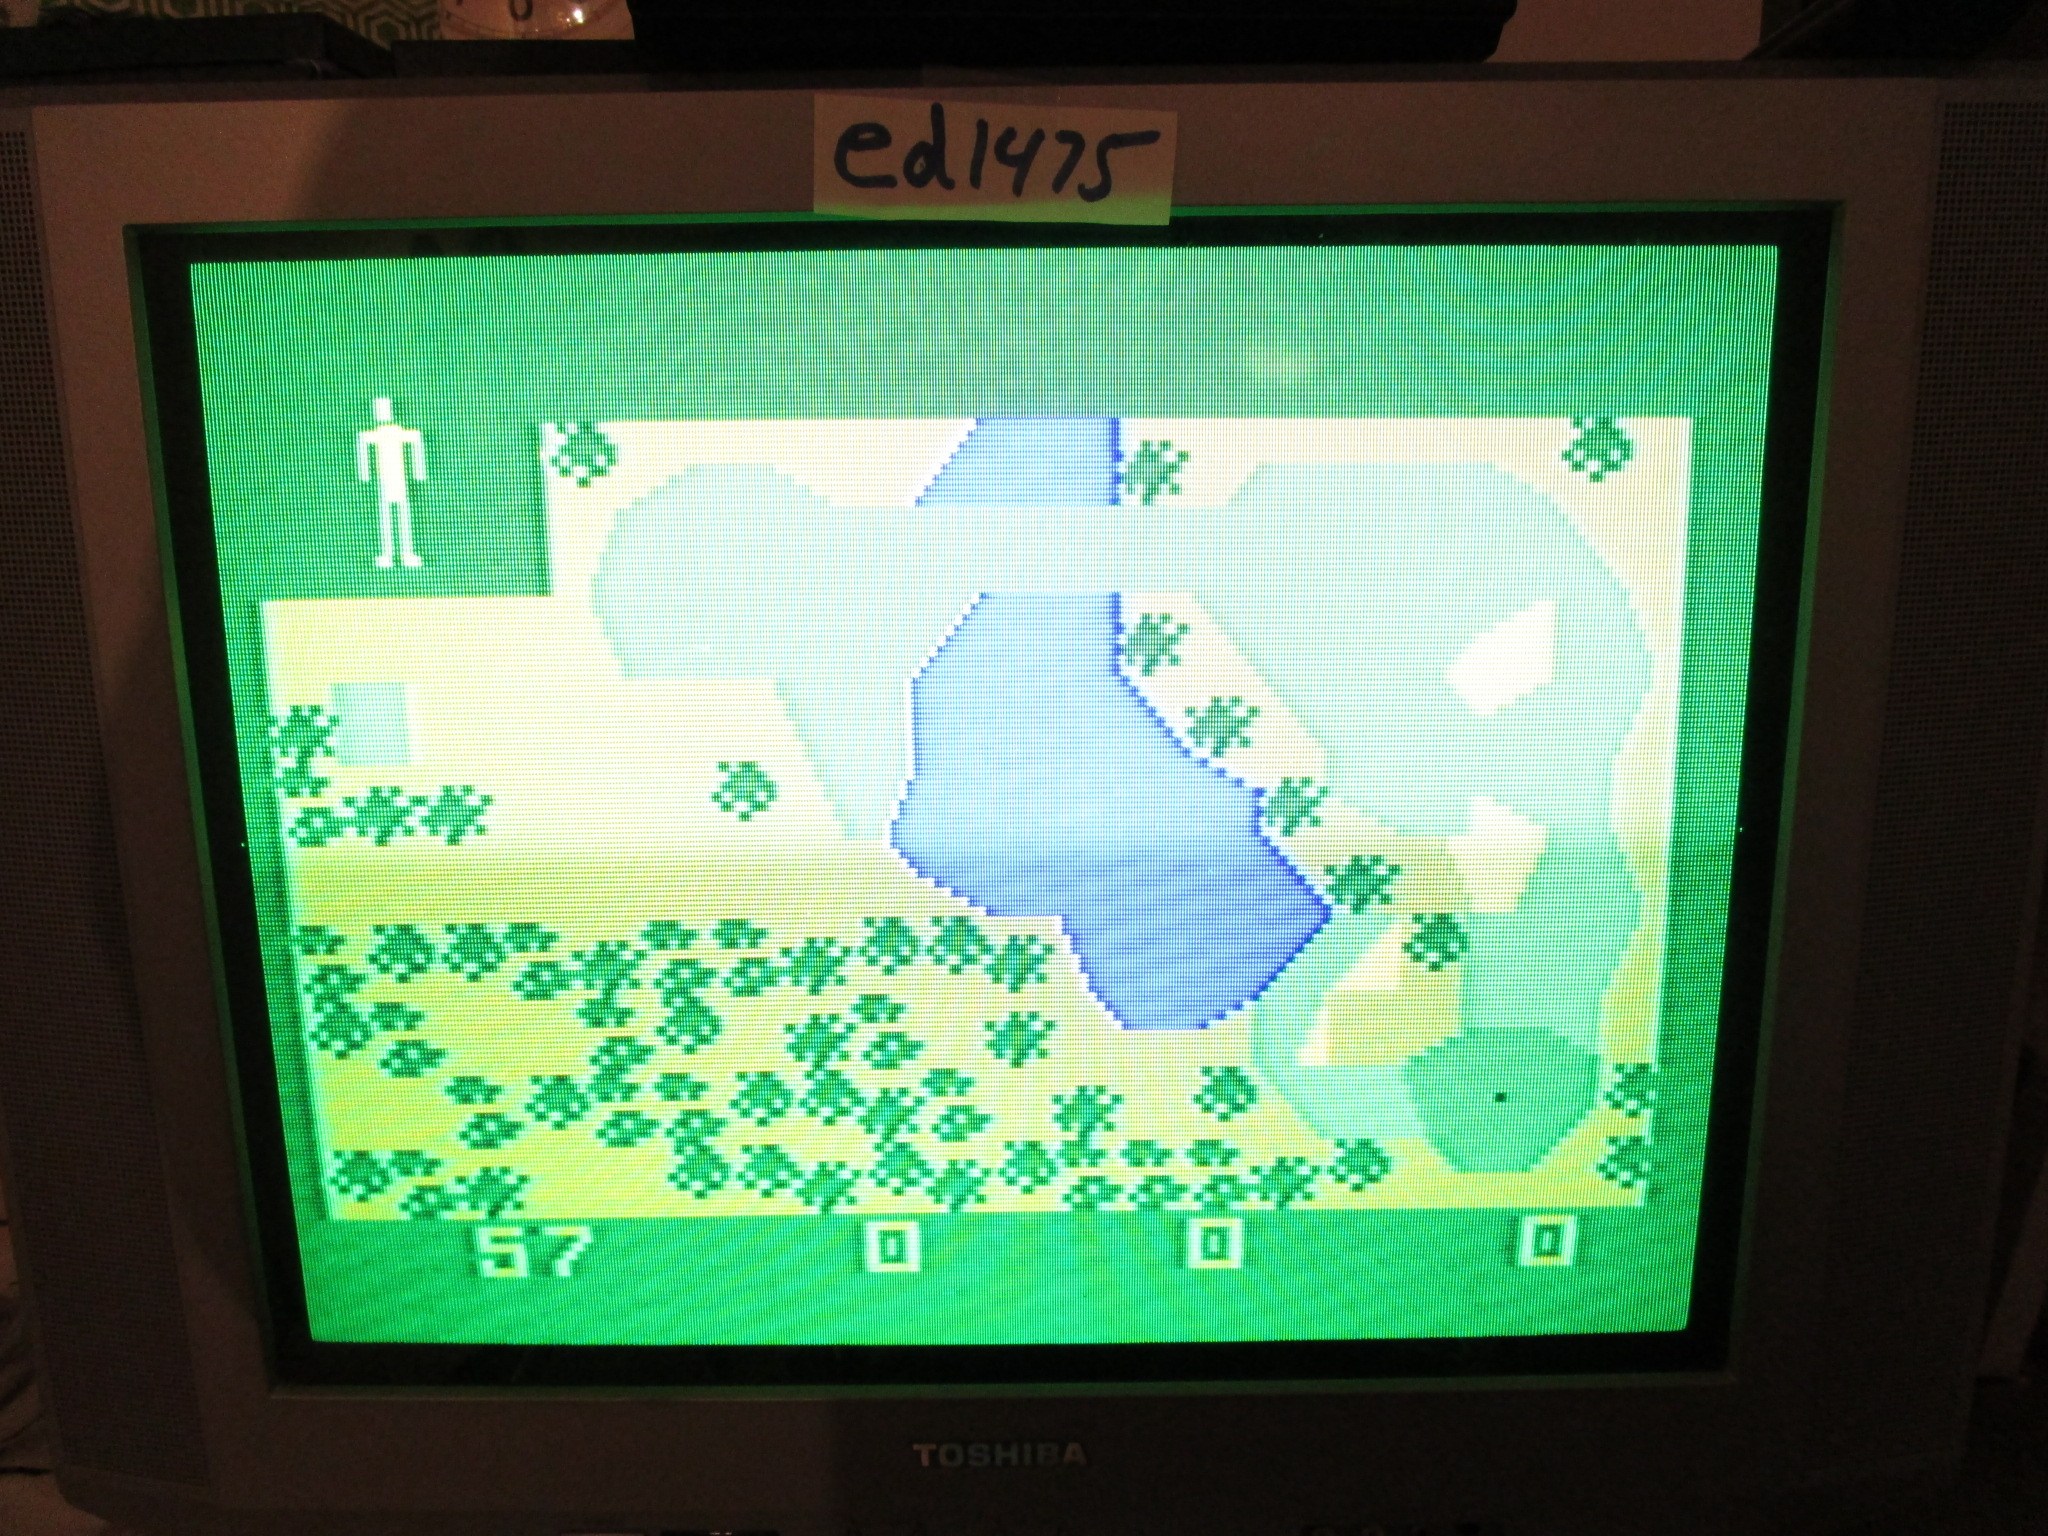 ed1475: PGA Golf (Intellivision) 57 points on 2014-12-14 16:15:24